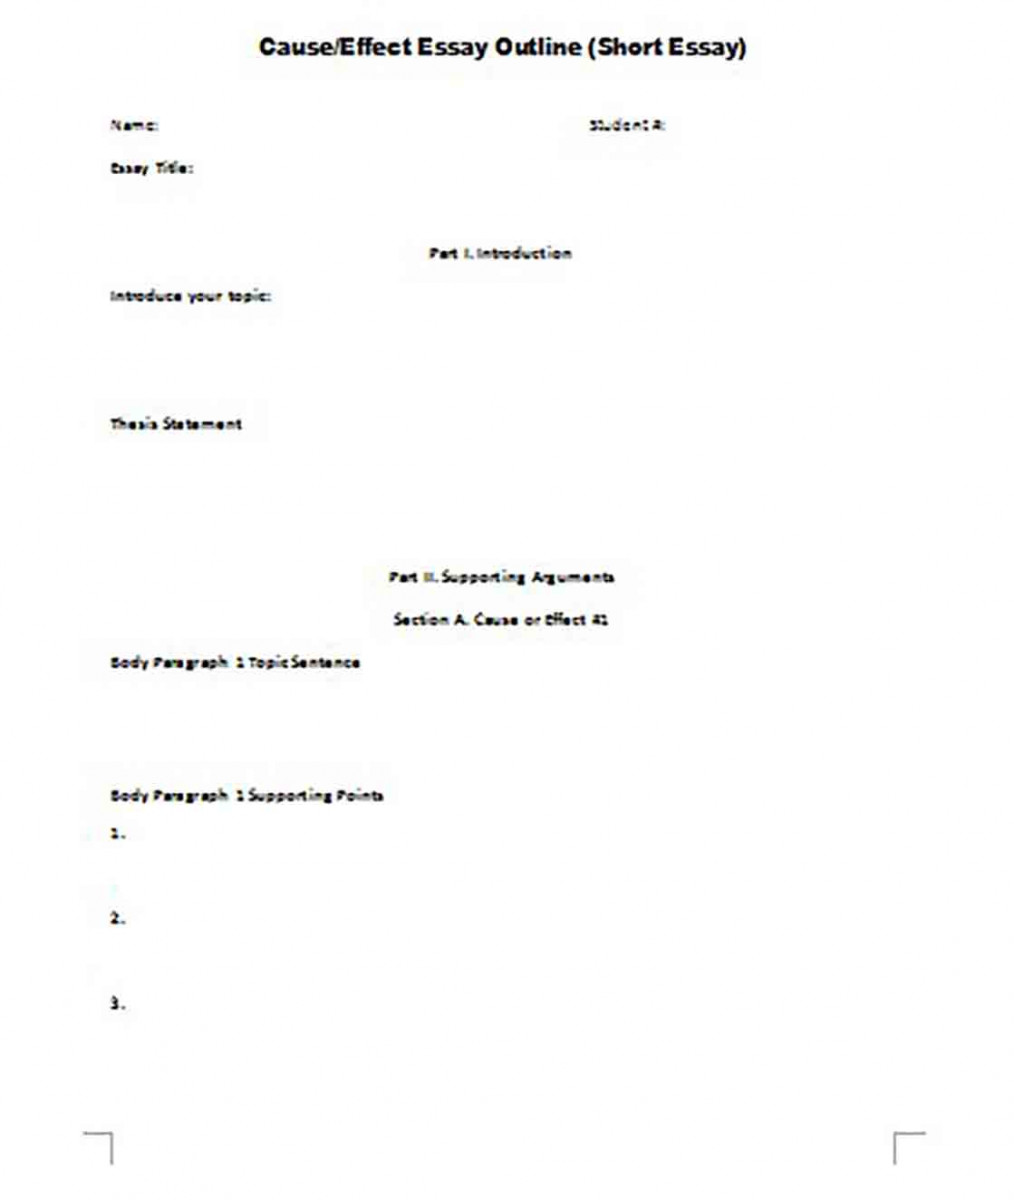 Short Essay Outline templates